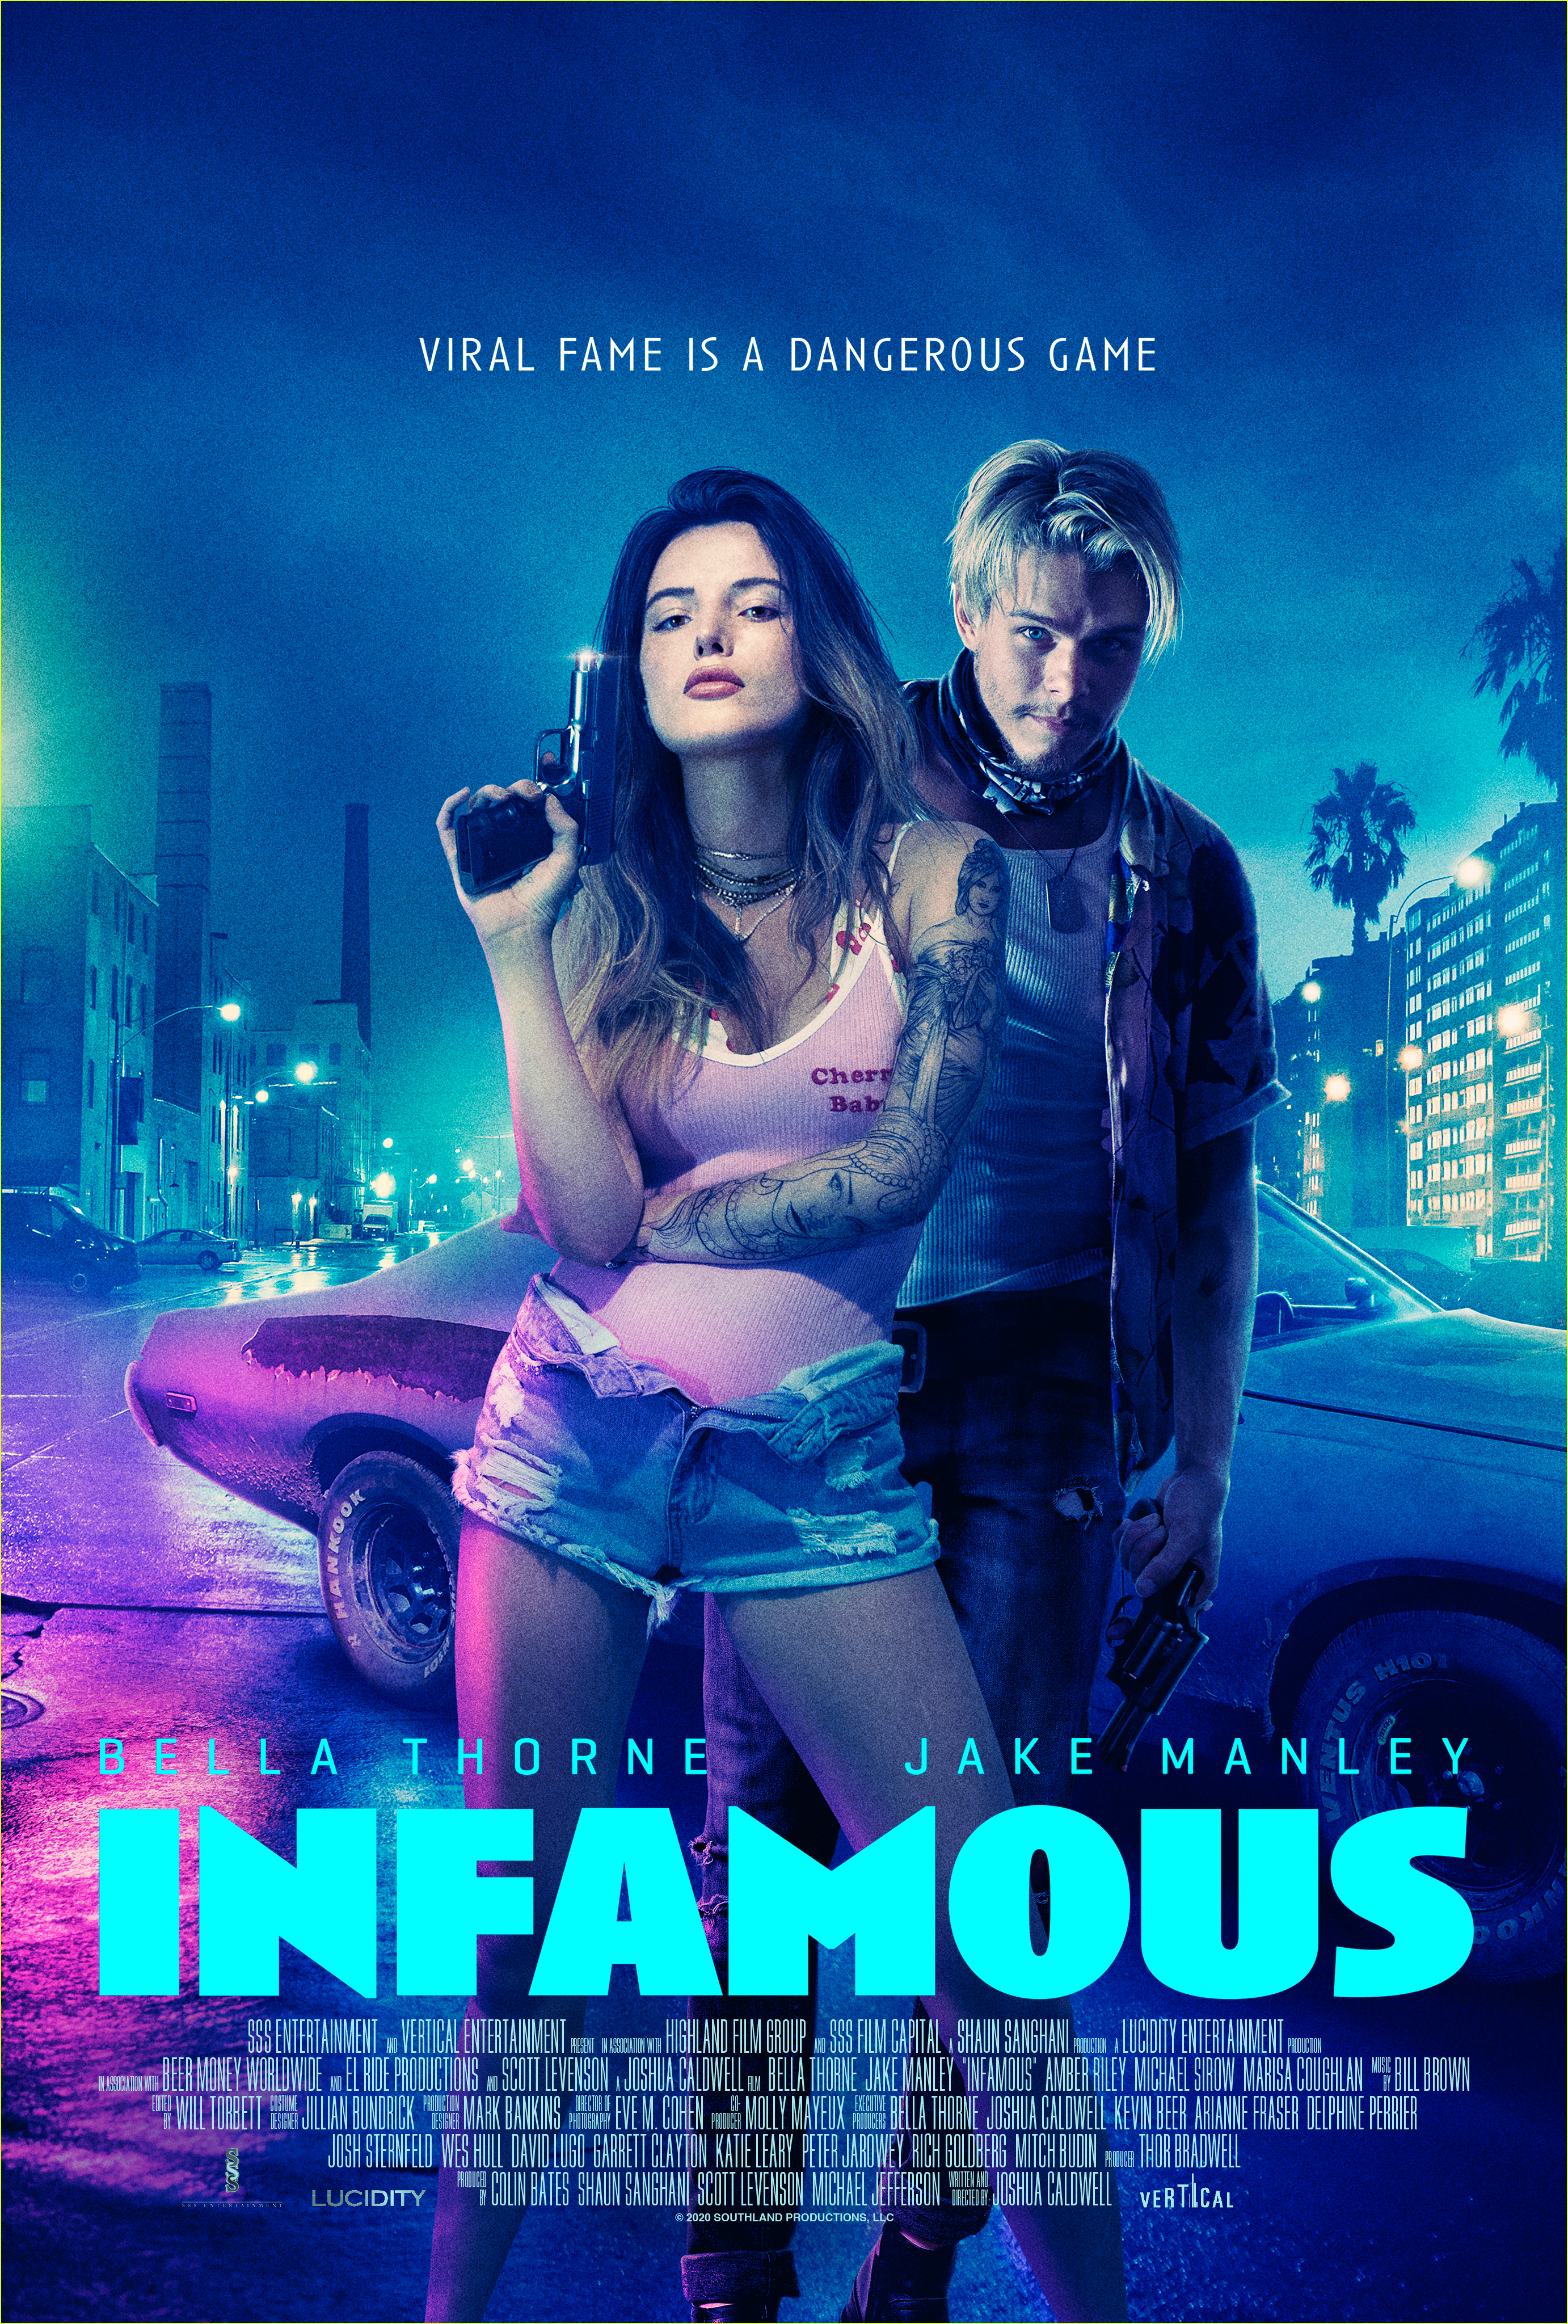 bella thorne is up to no good in infamous trailer 02